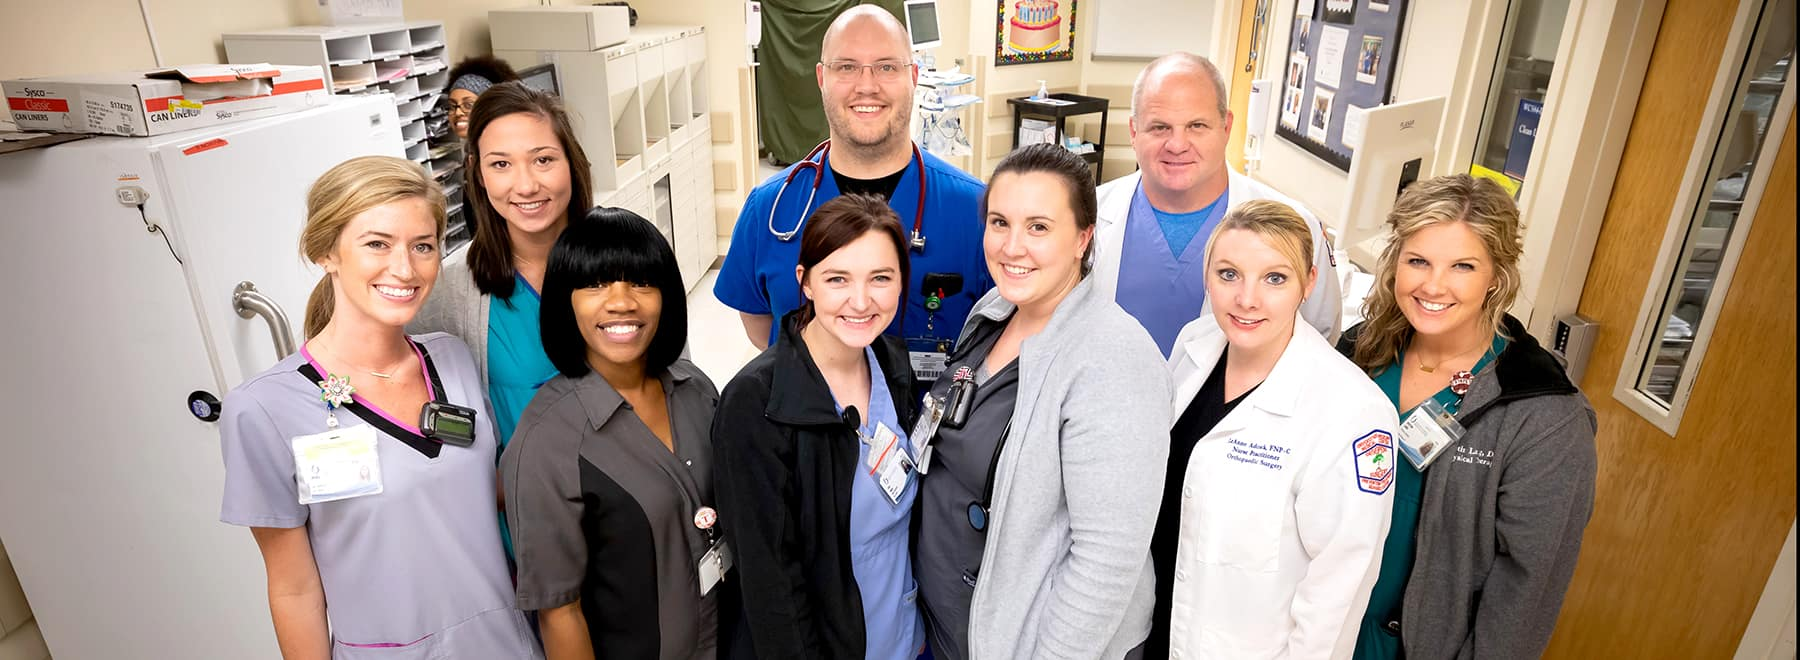 Group of male and female UMMC medical staff from the orthopedics departments pose in front of a nurses'  station.